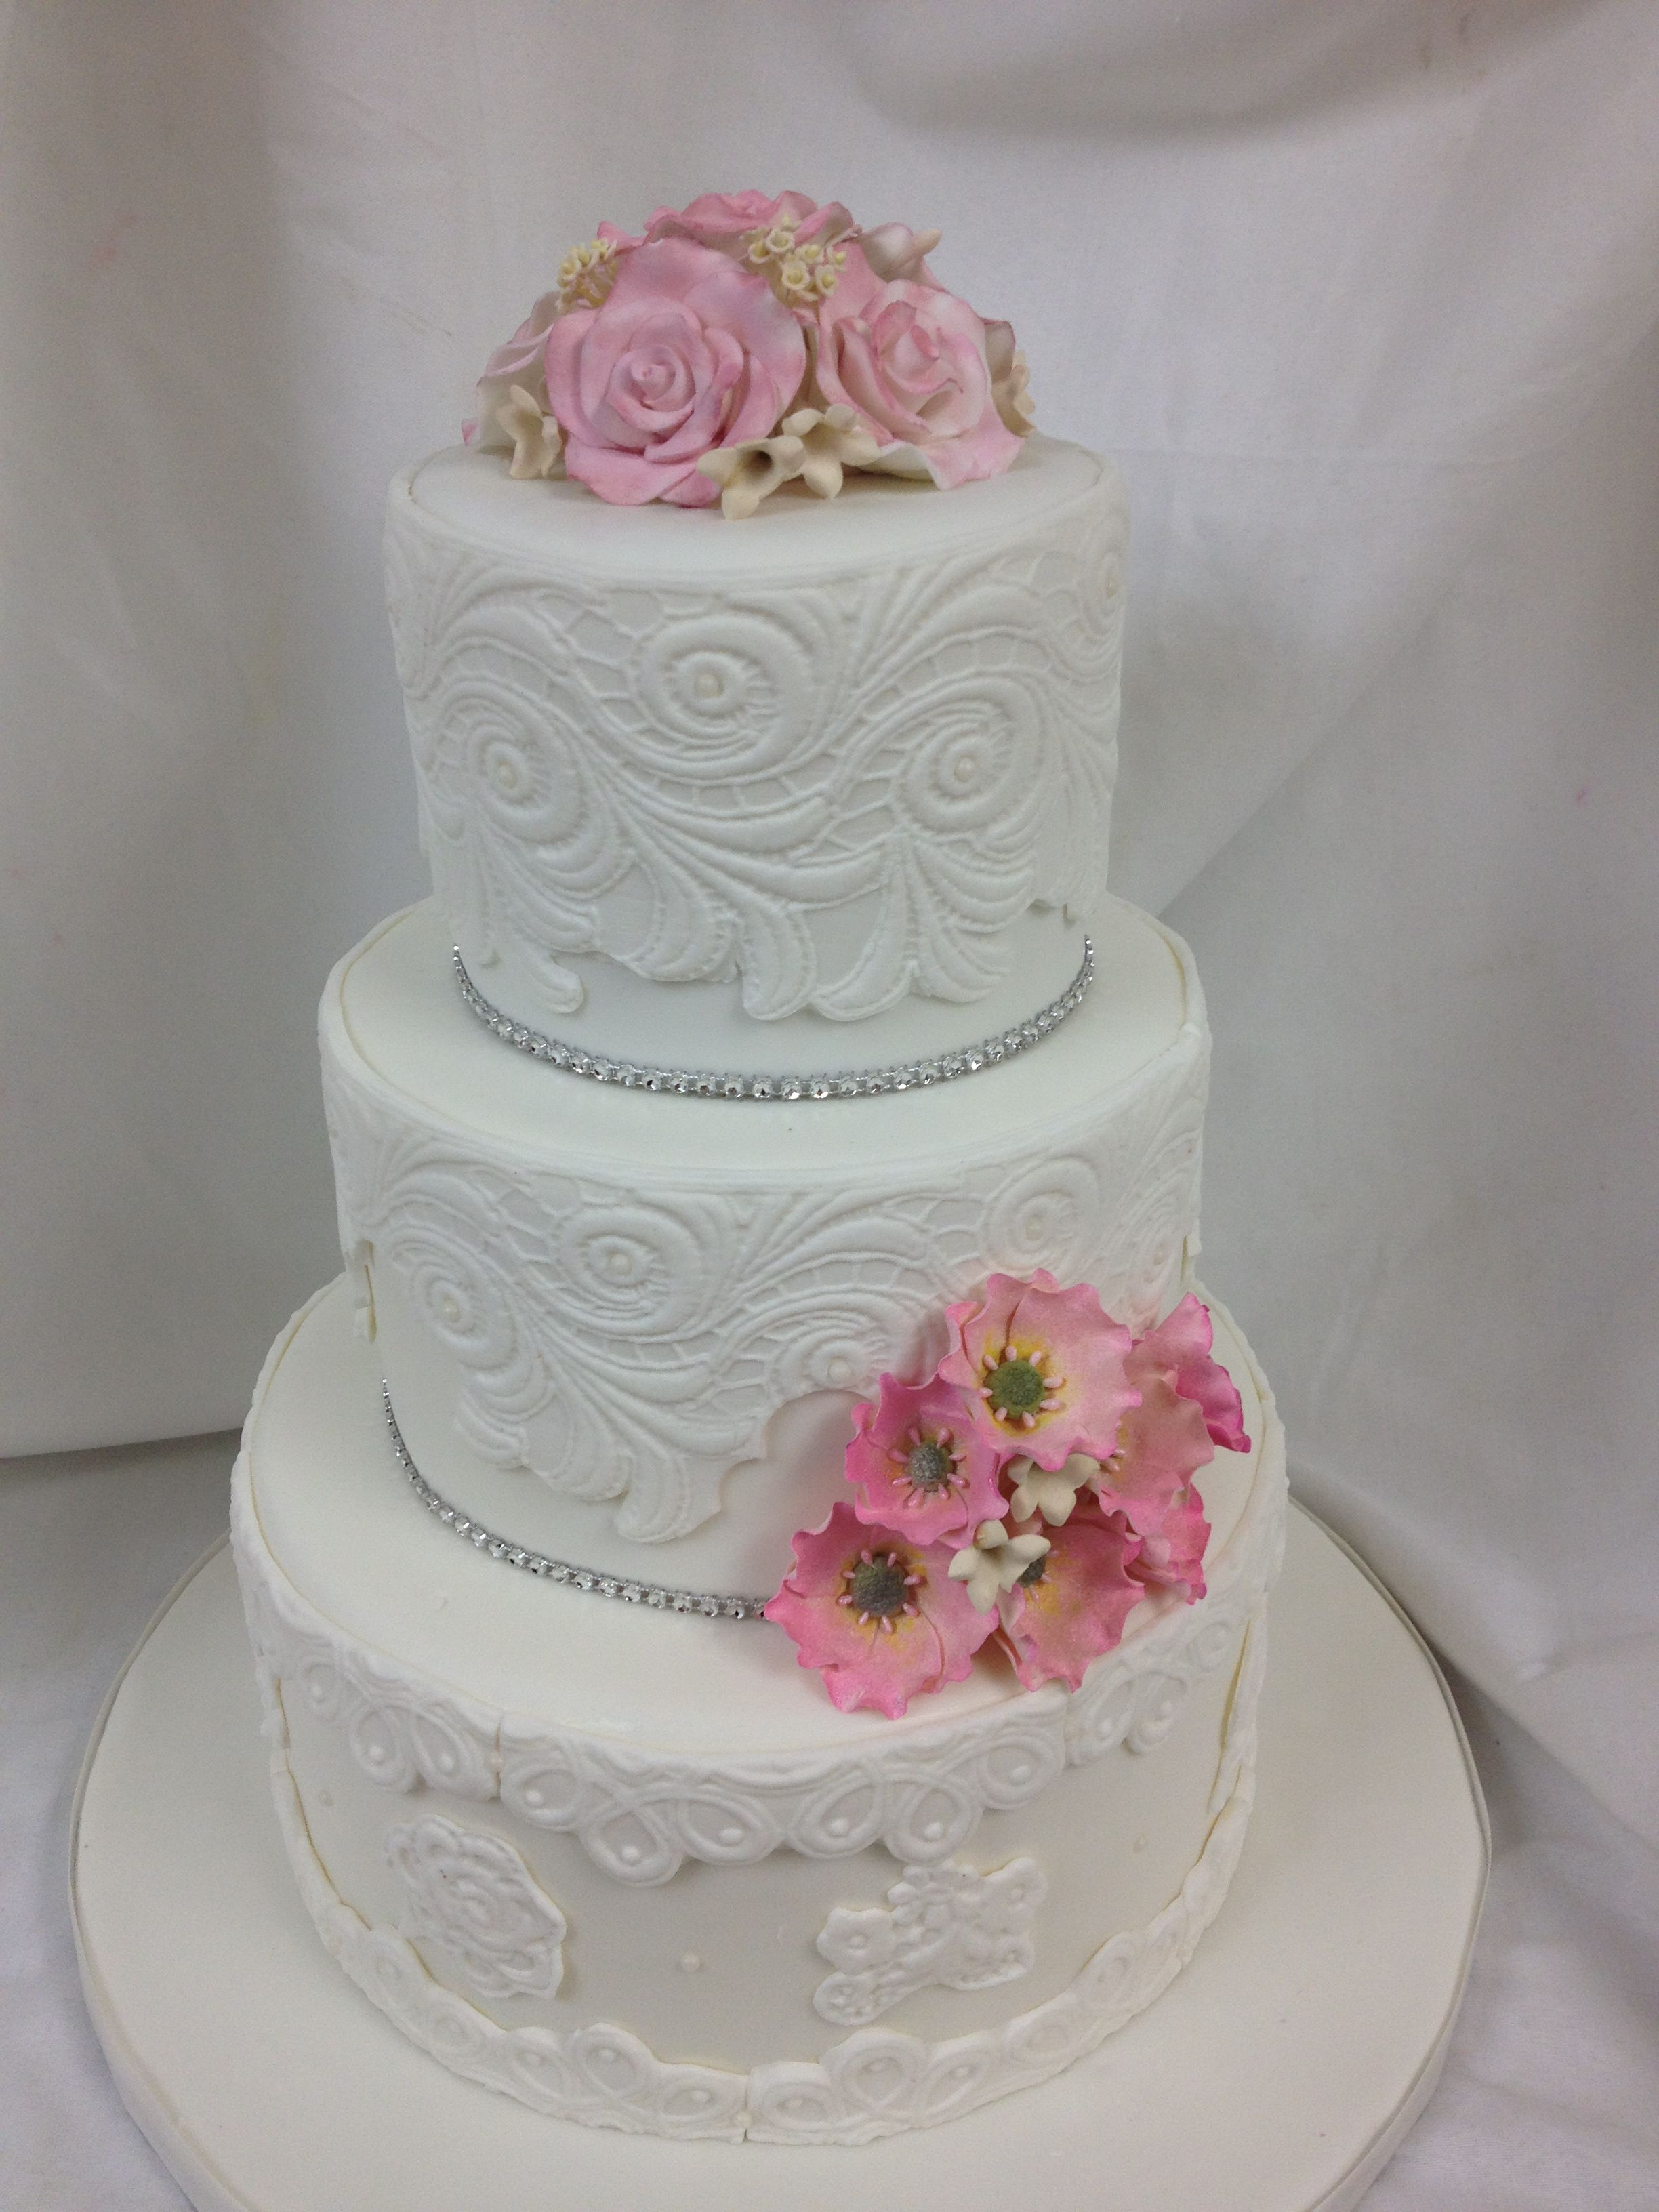 Awesome Kreation From Our Sister Company Kake Kreations In Whitby ON Kakekreations SistersAwesomeSugarAmazing CakesWedding Cakes